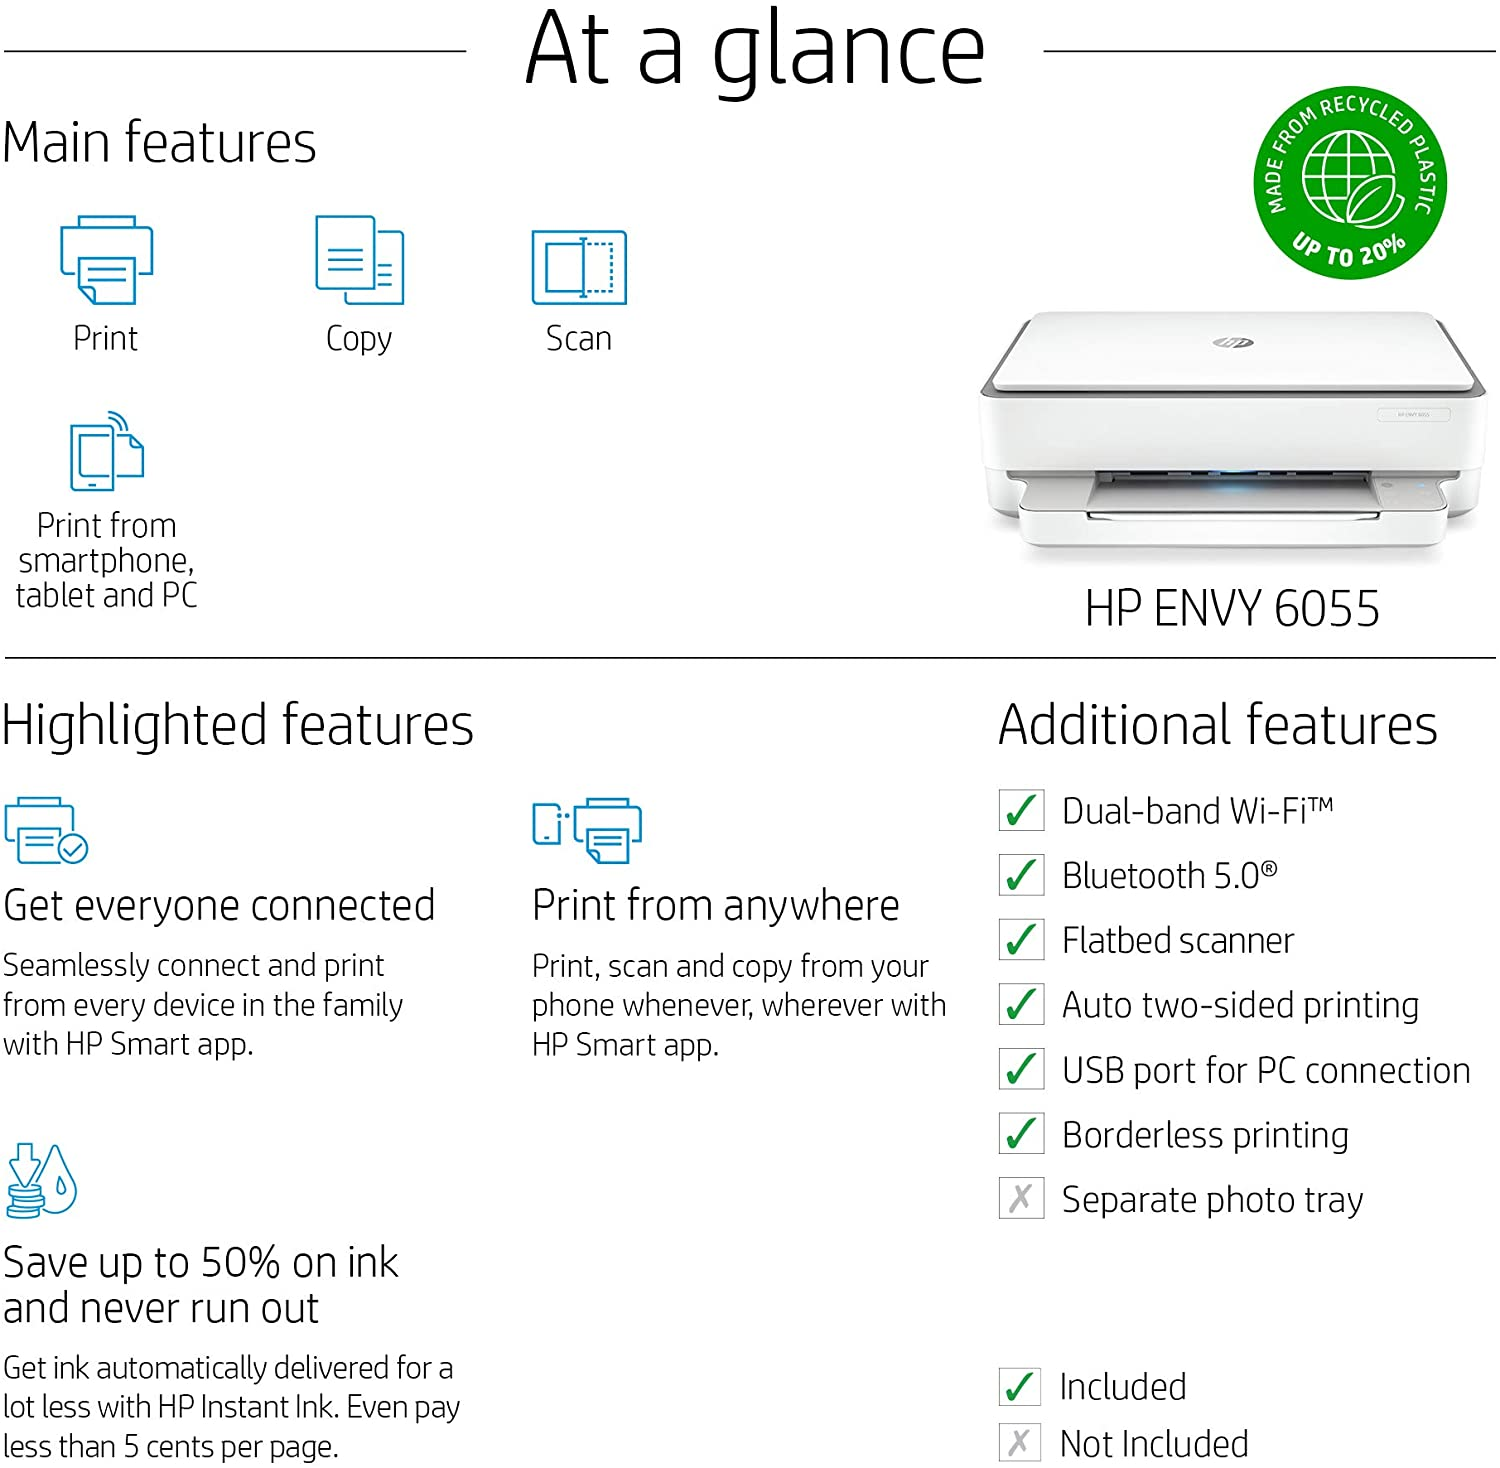 Product Infographic Amazon HP Printer Product Feature Example